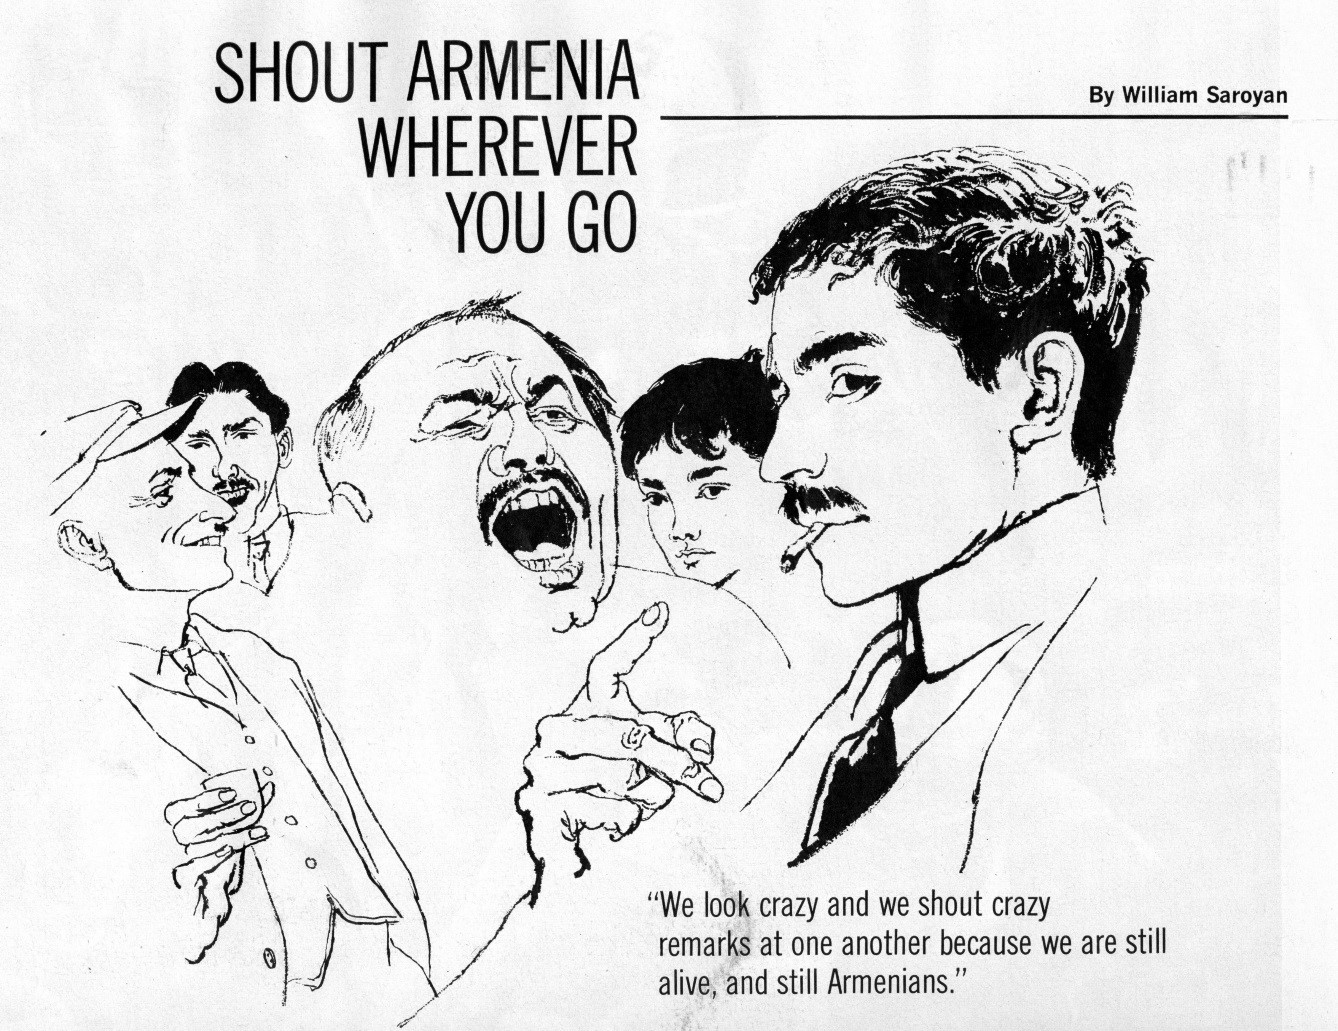 graphic for shout armenia